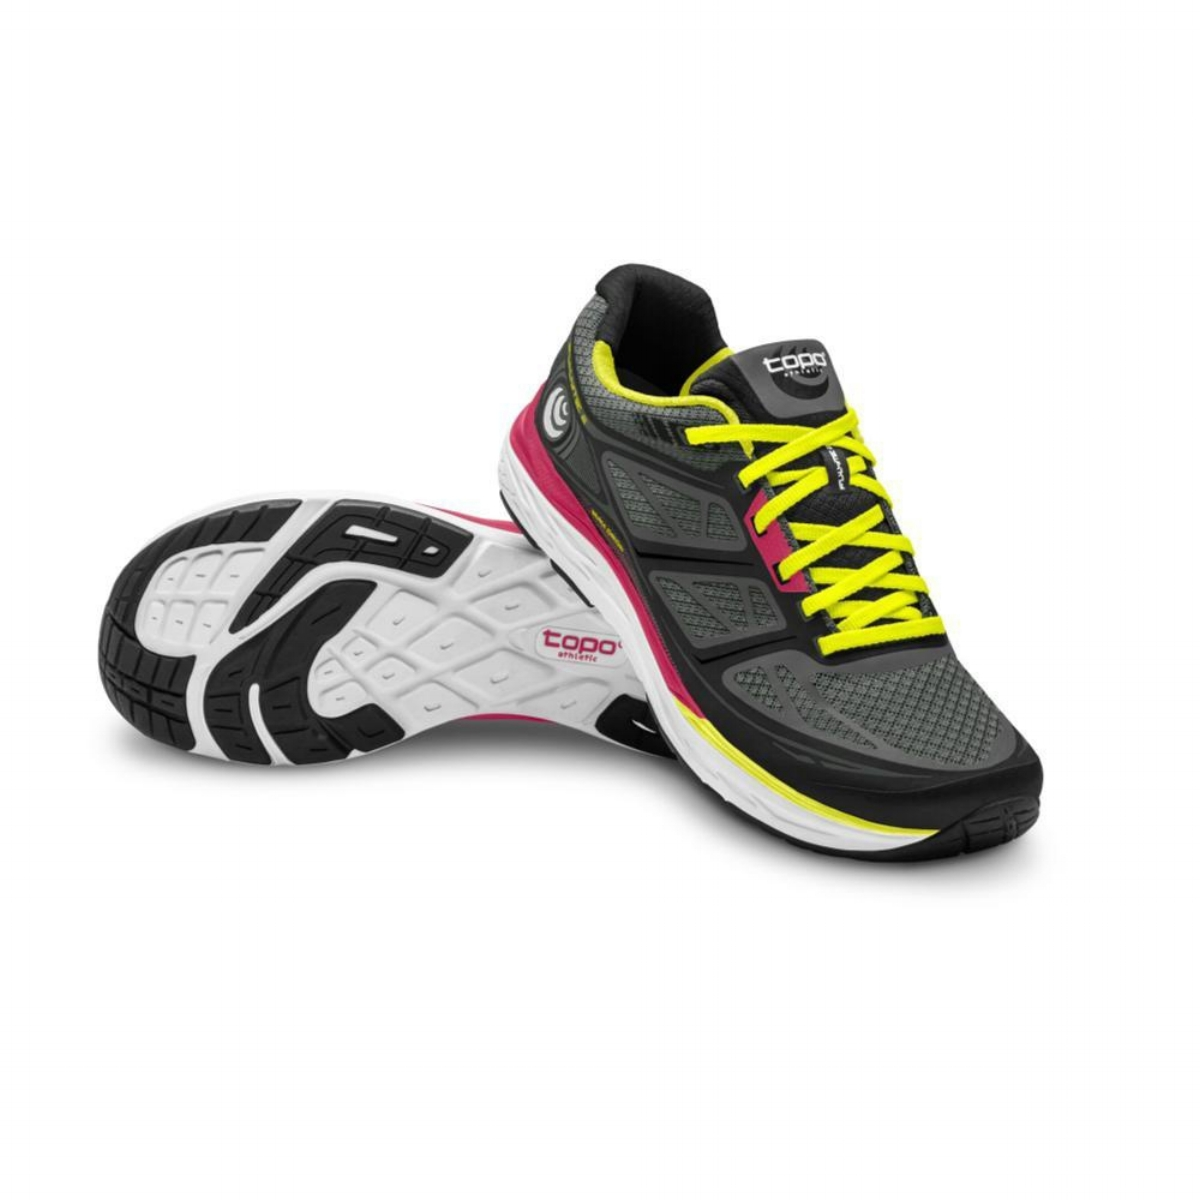 Topo Athletic Women's Fli-Lyte - Black/Yellow (PC: Topoathletic.com)